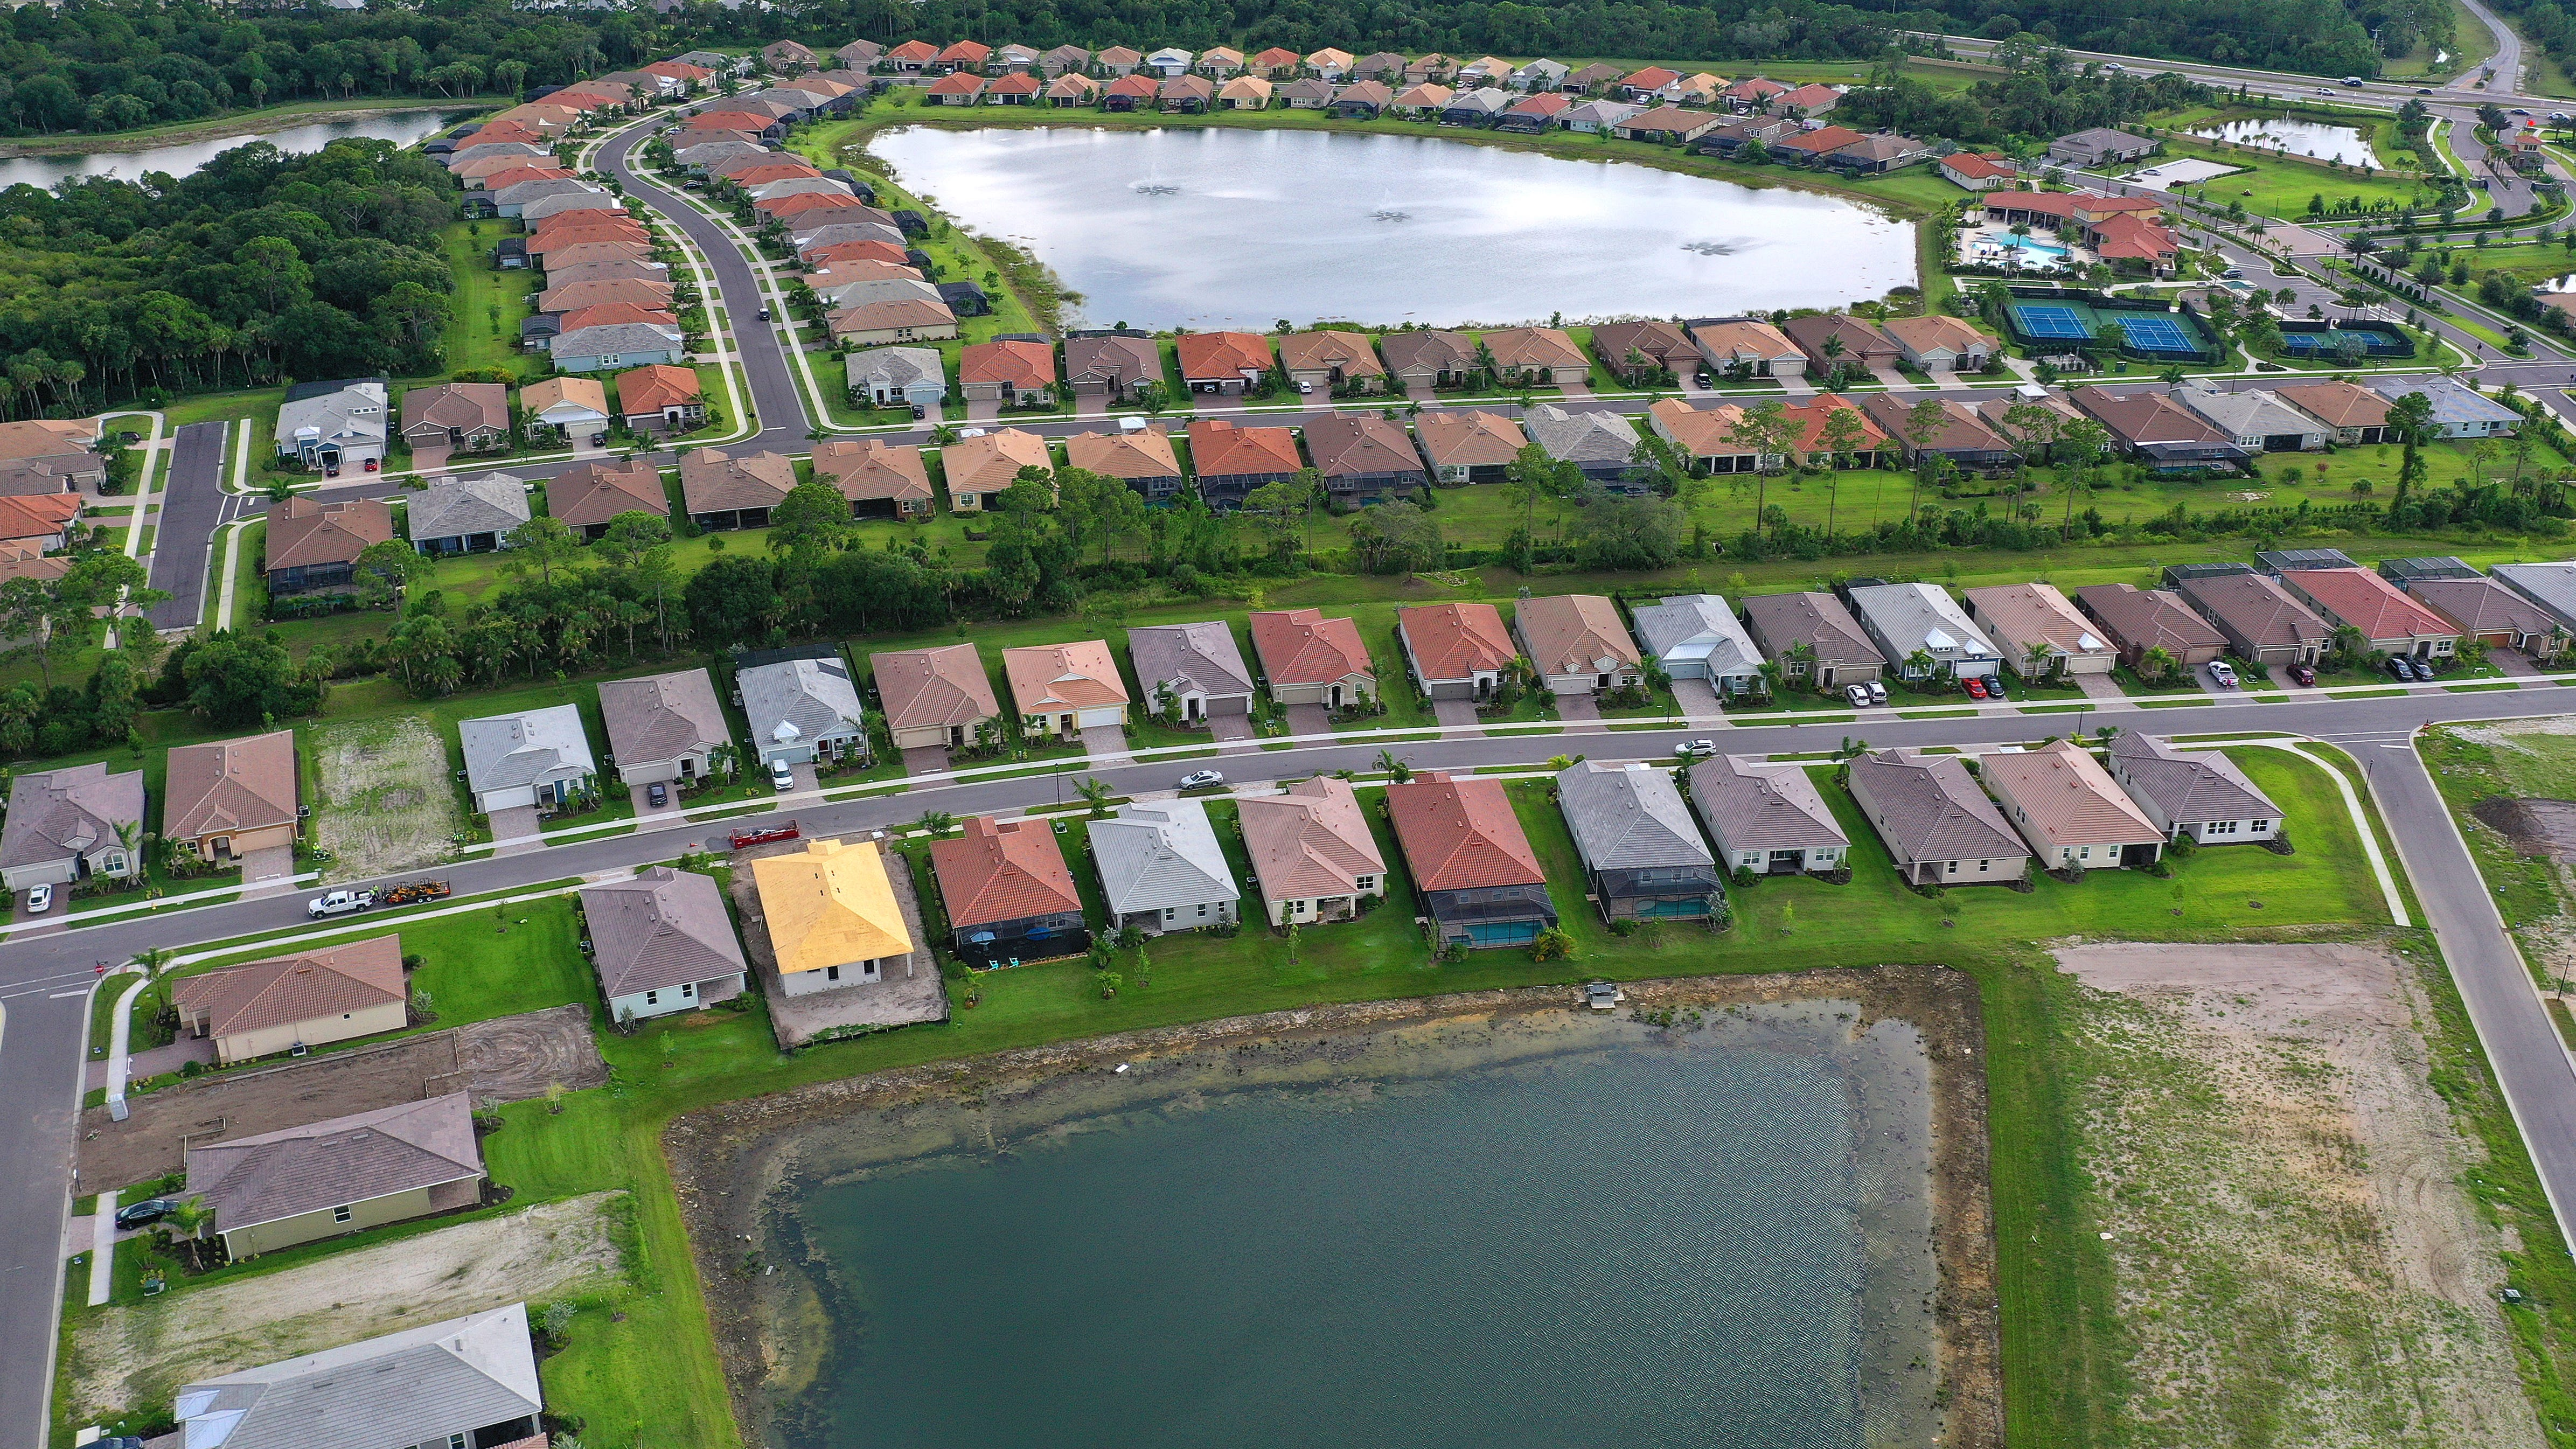 Plan to build 9,000 homes in Sarasota County advances